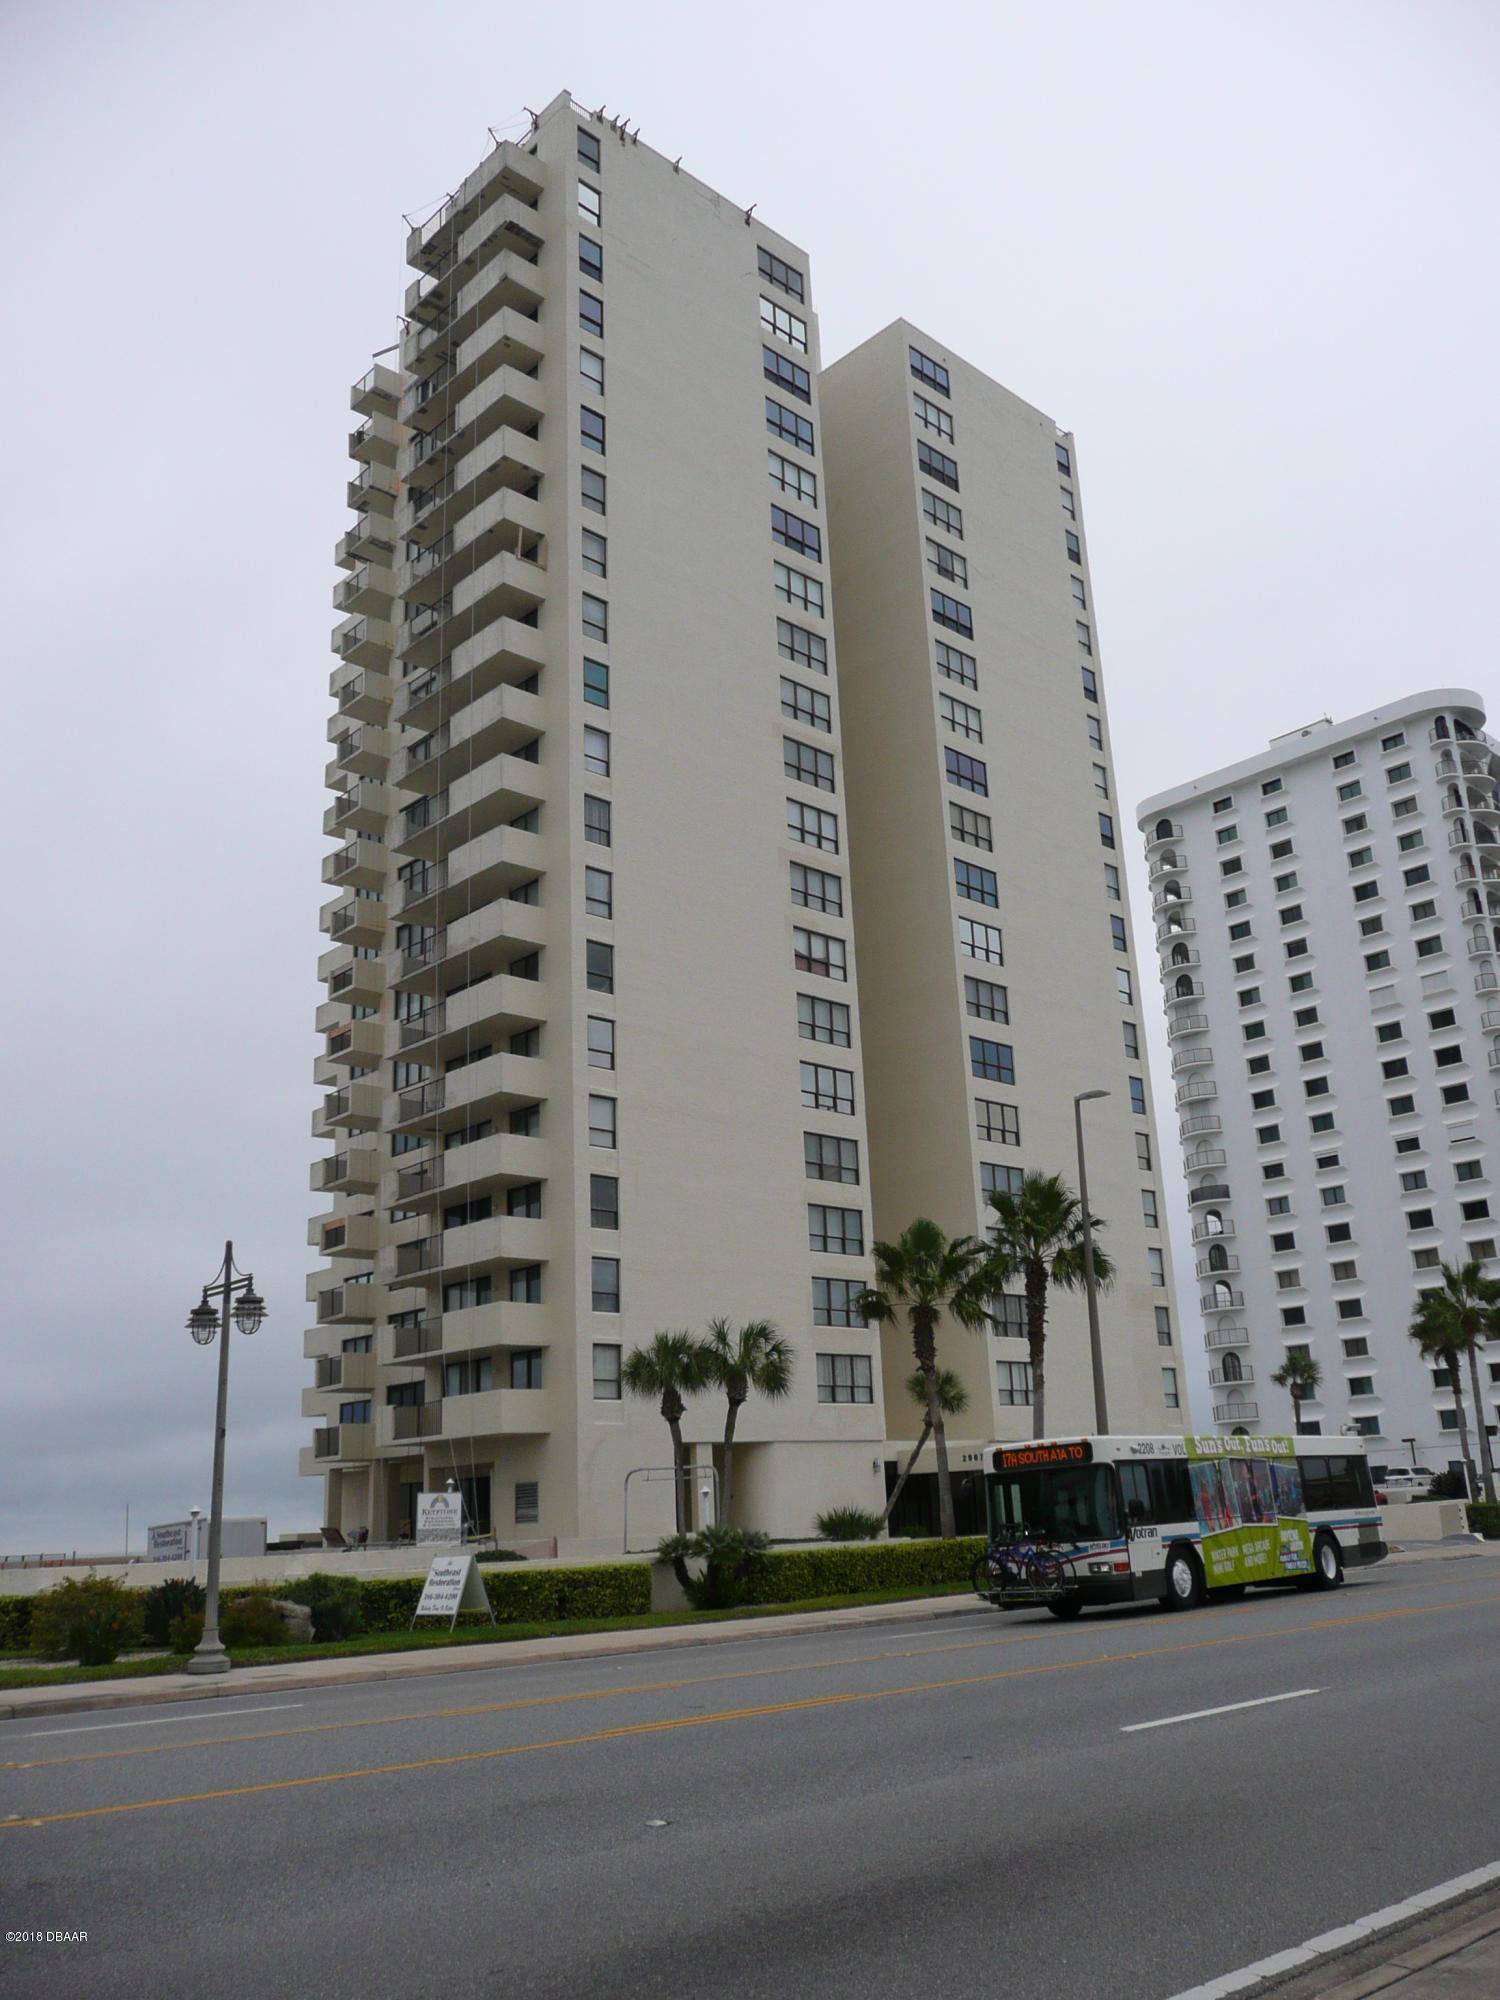 primary photo for 2987 S Atlantic Avenue 1505, Daytona Beach Shores, FL 32118, US